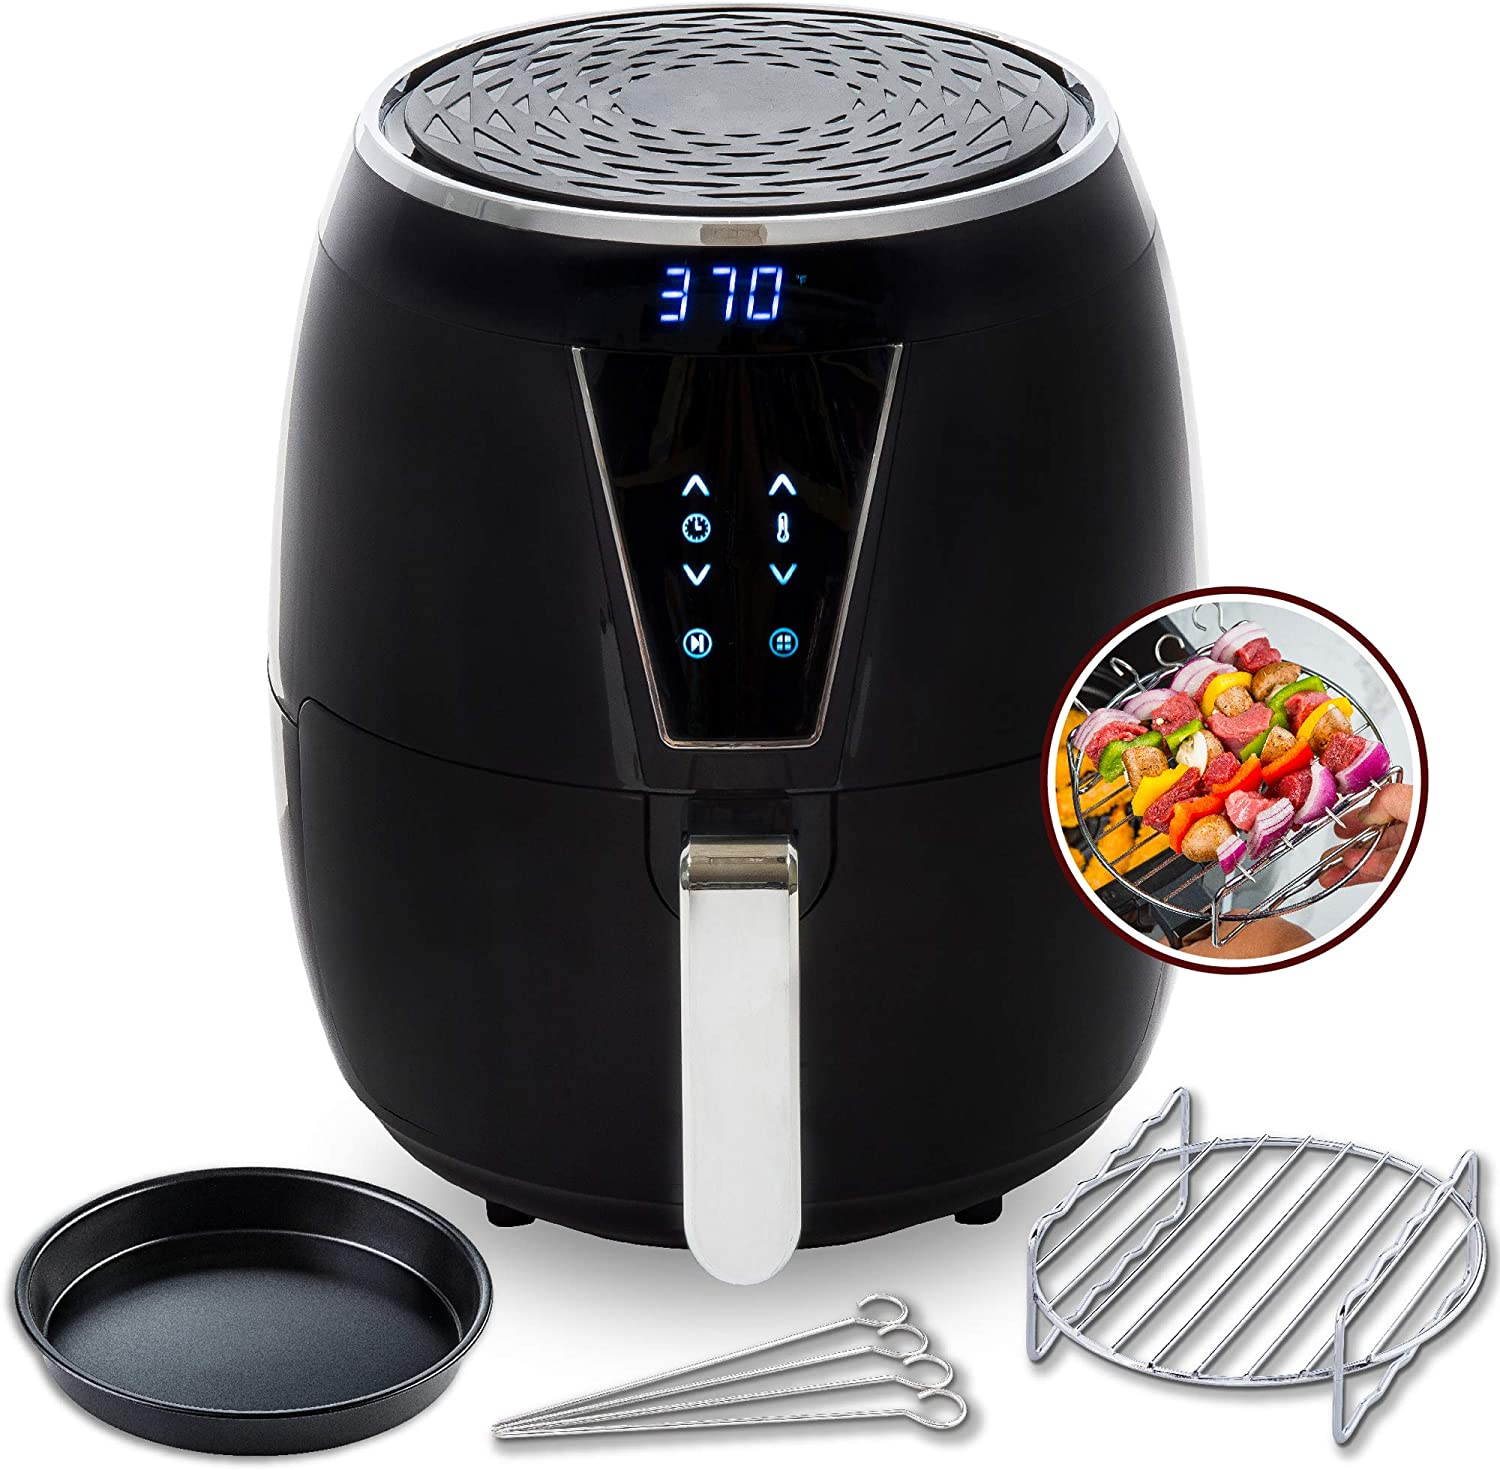 Aria Air Fryers CFA-897 Aria Ceramic Air Fryer, 5Qt, Premium Black